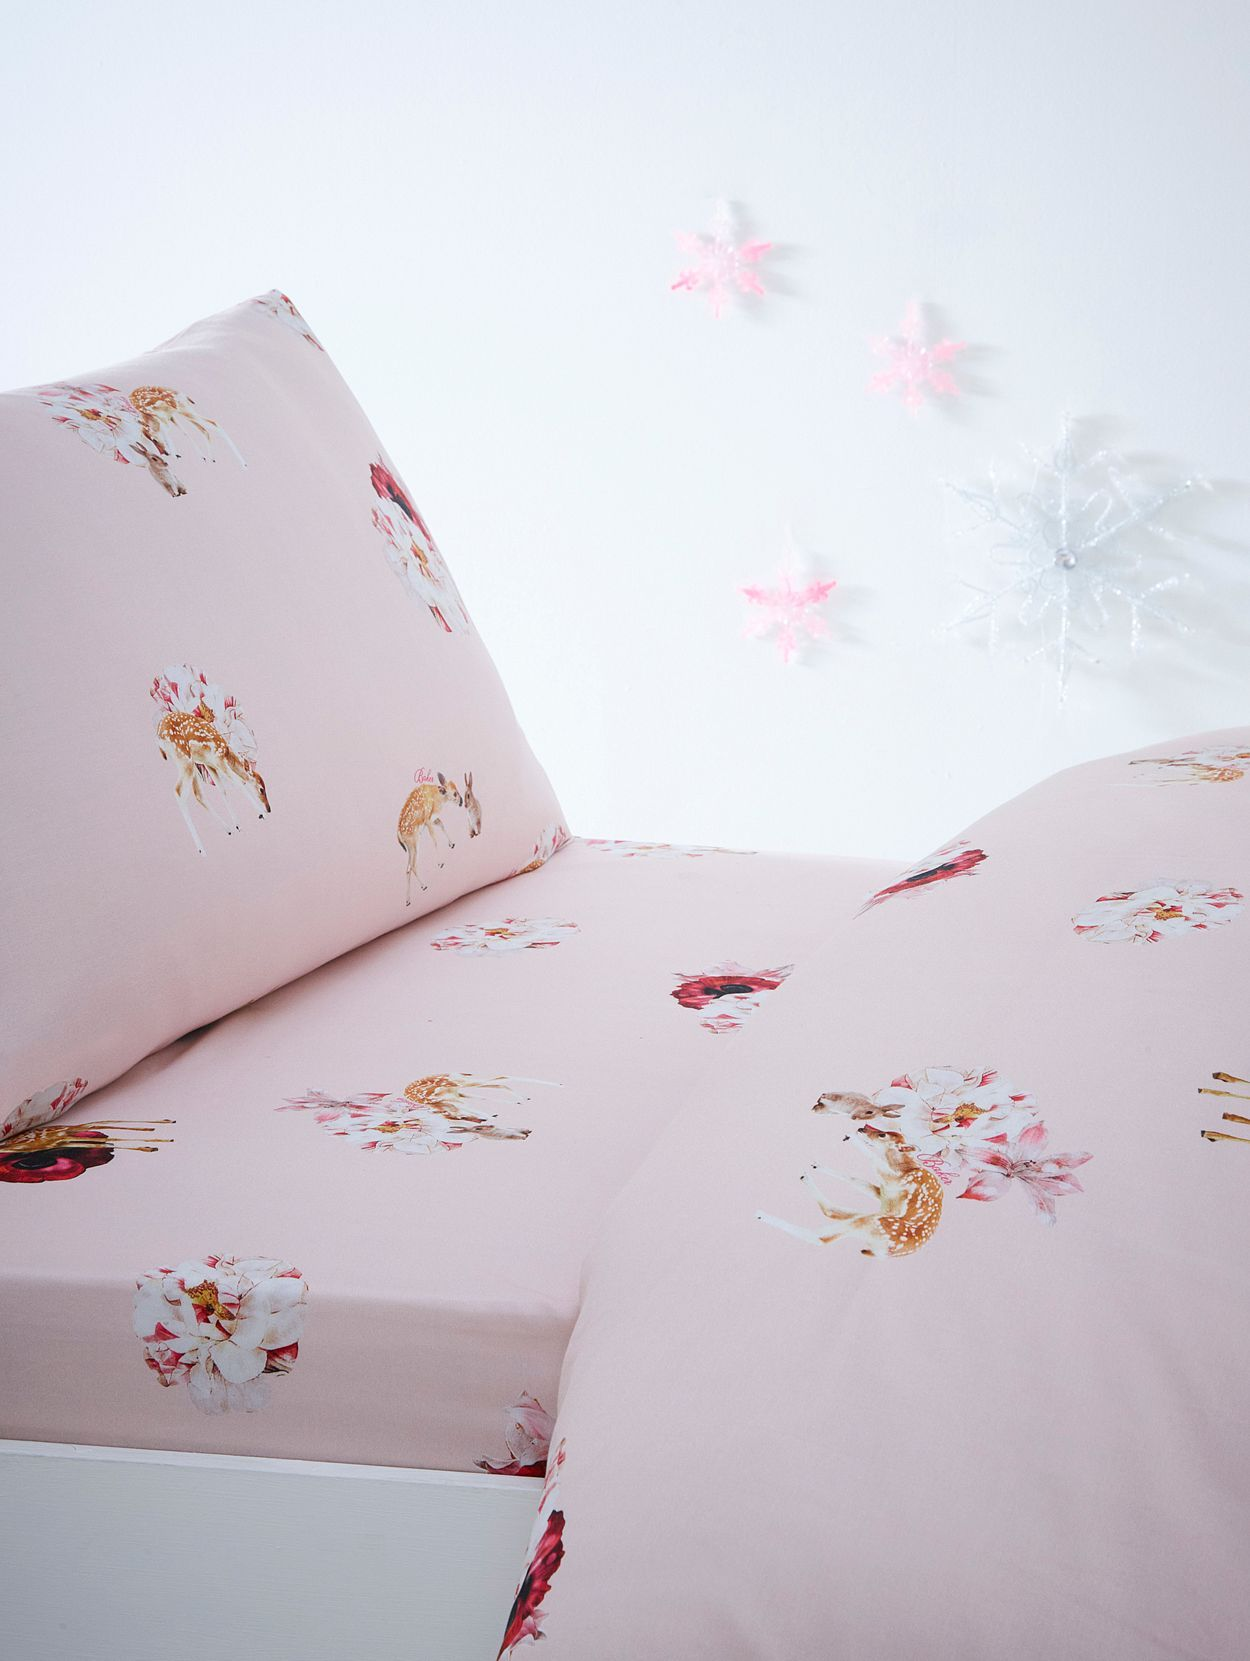 fba4c41475e5 Buy Kids bedding from the Home department at Debenhams. You ll find the  widest range of Kids bedding products online and delivered to your door. Ted  Baker ...